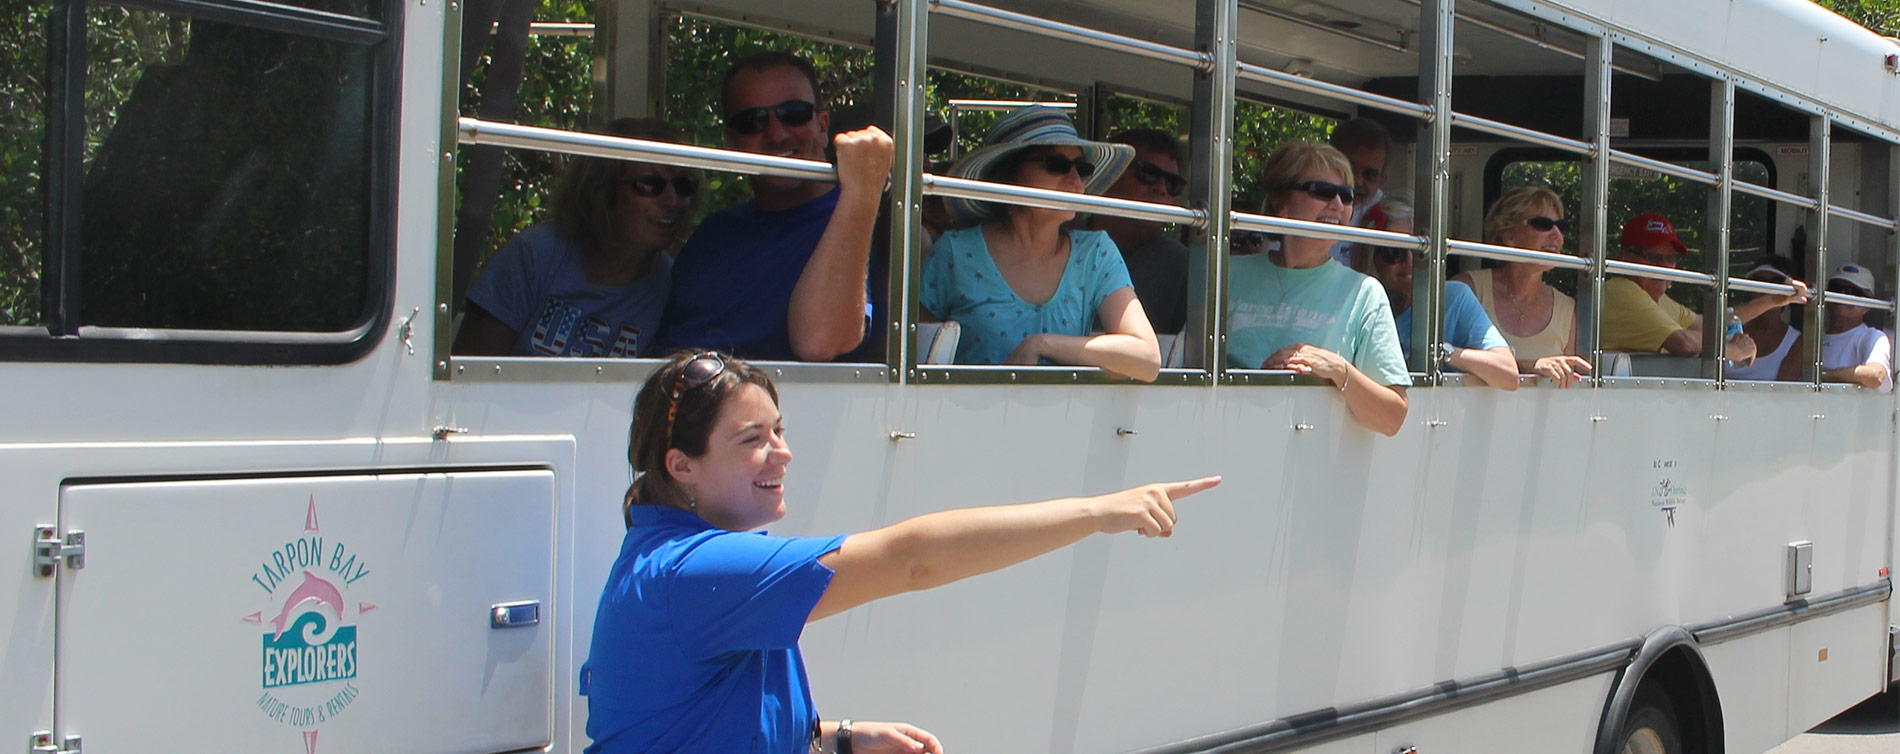 Image of refuge tram tour tour at Tarpon Bay Explorers